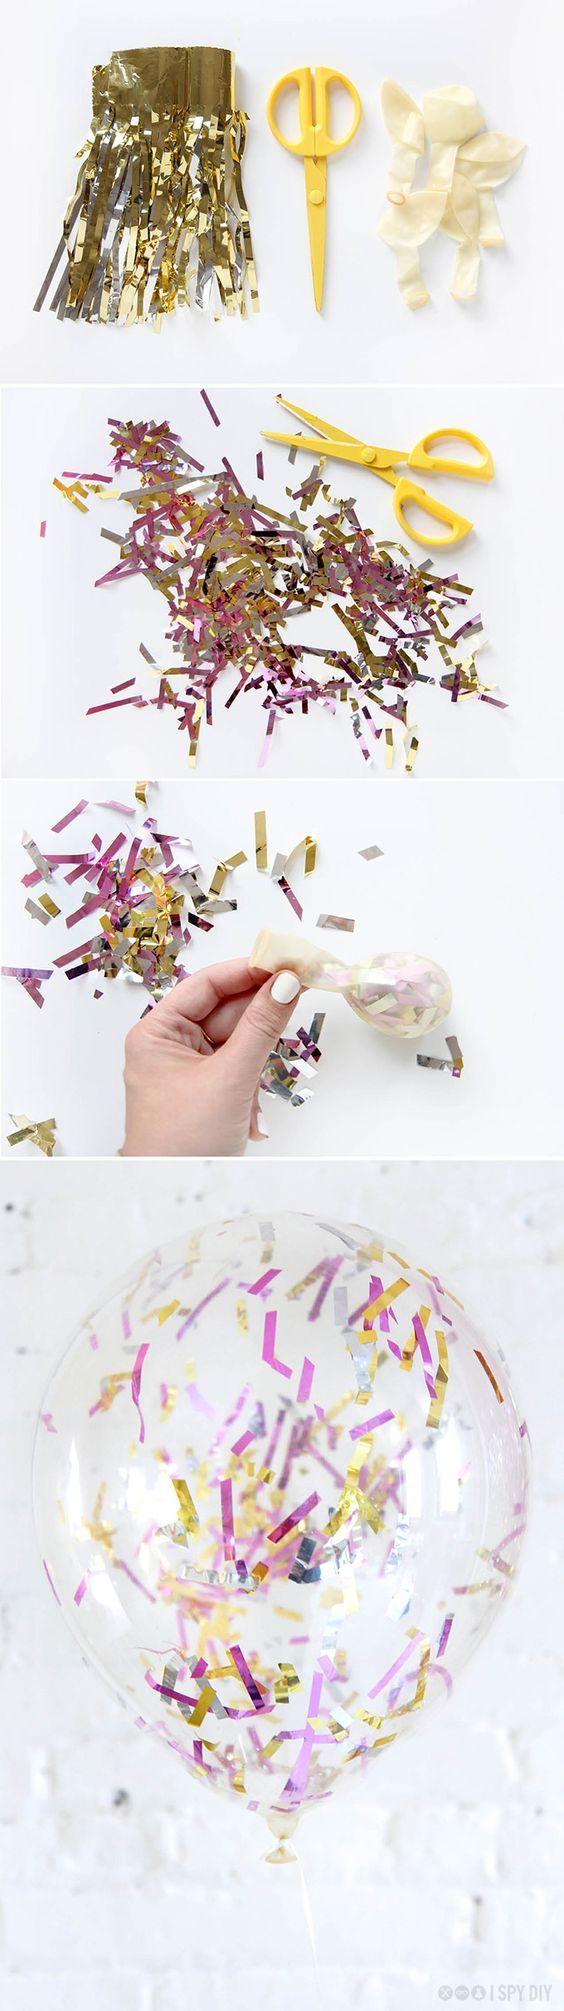 Confetti Balloon Tutorial: